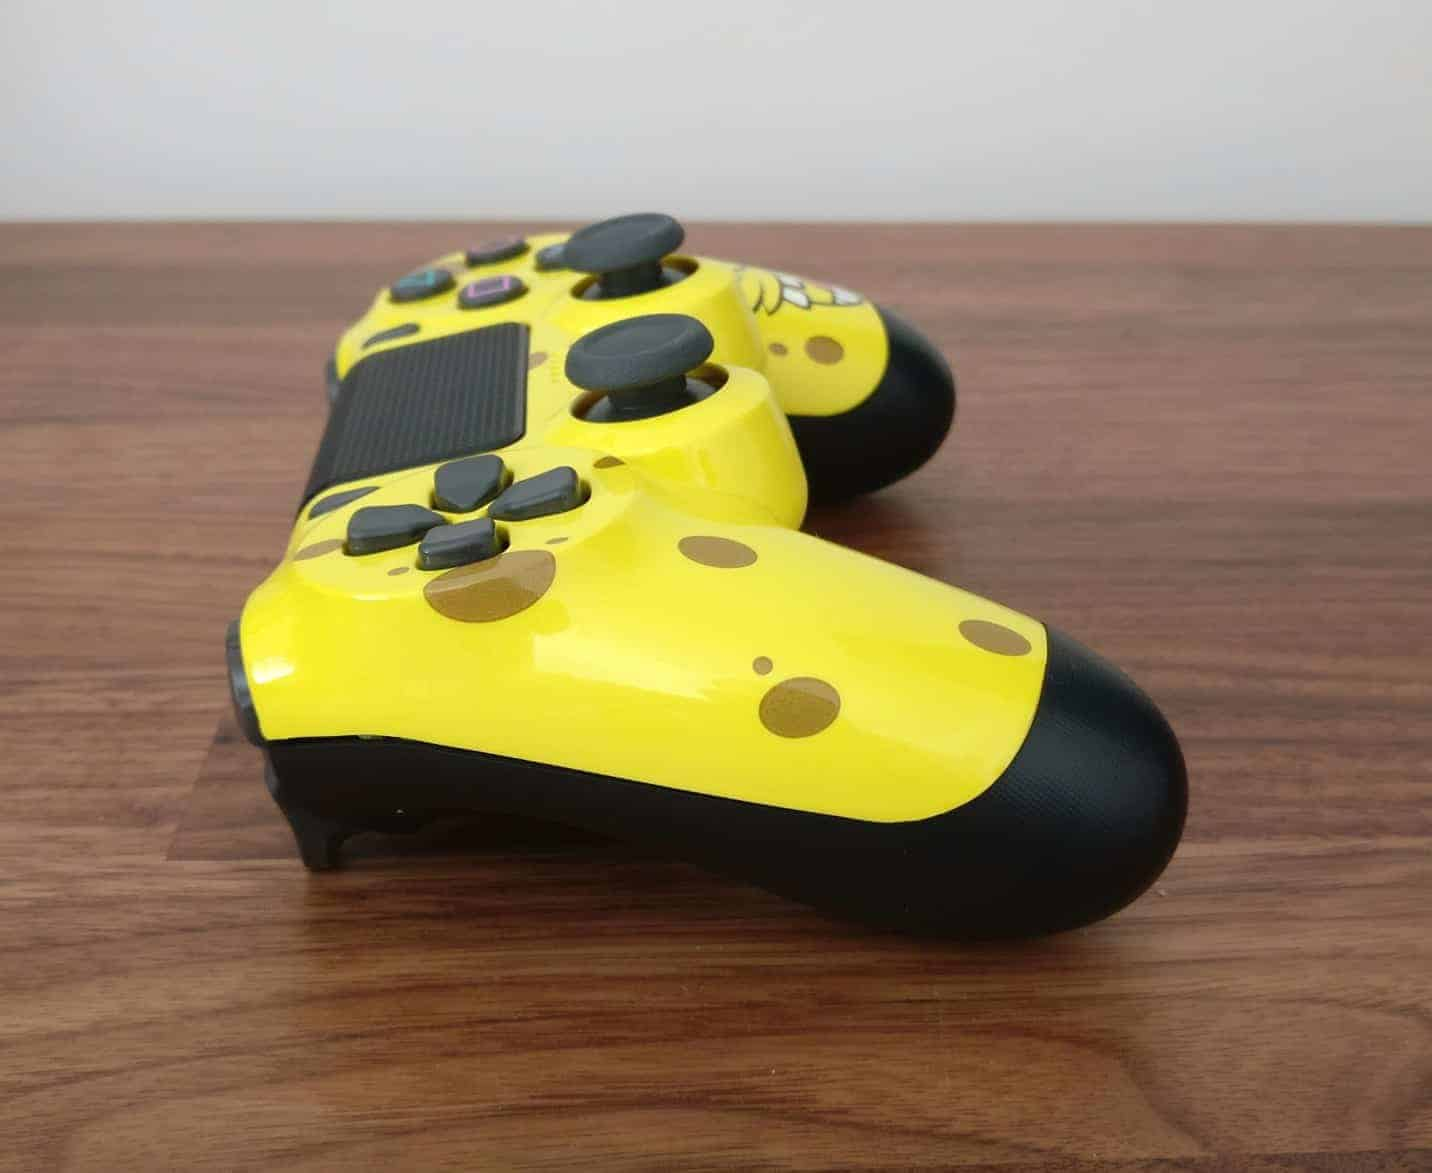 mega-modz-planey-ps4-Photos-07 Mega Modz Planet Modded PS4 and Xbox One Controller Review